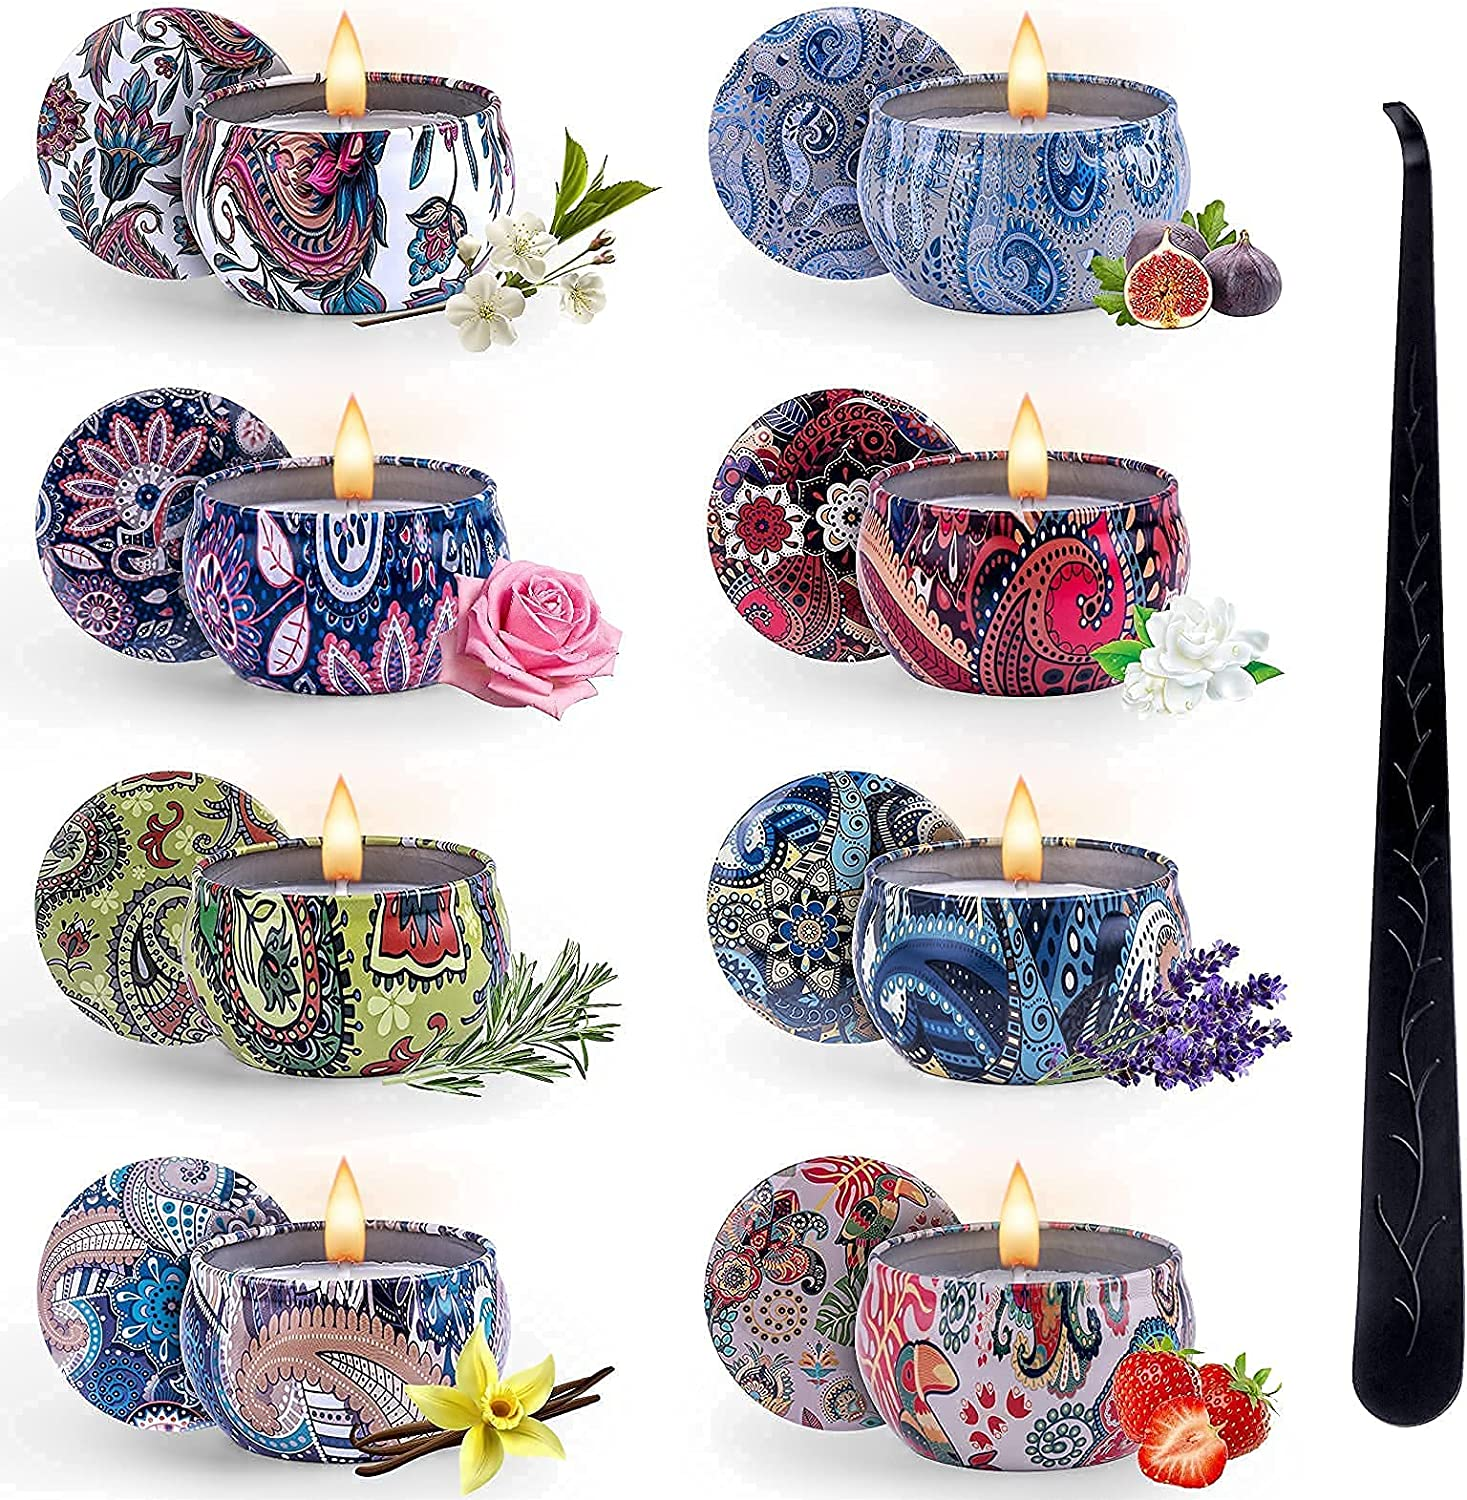 VAZILLIO Scented Candles Gift Set 8 Pack Candl Women SALENEW very popular for Very popular!